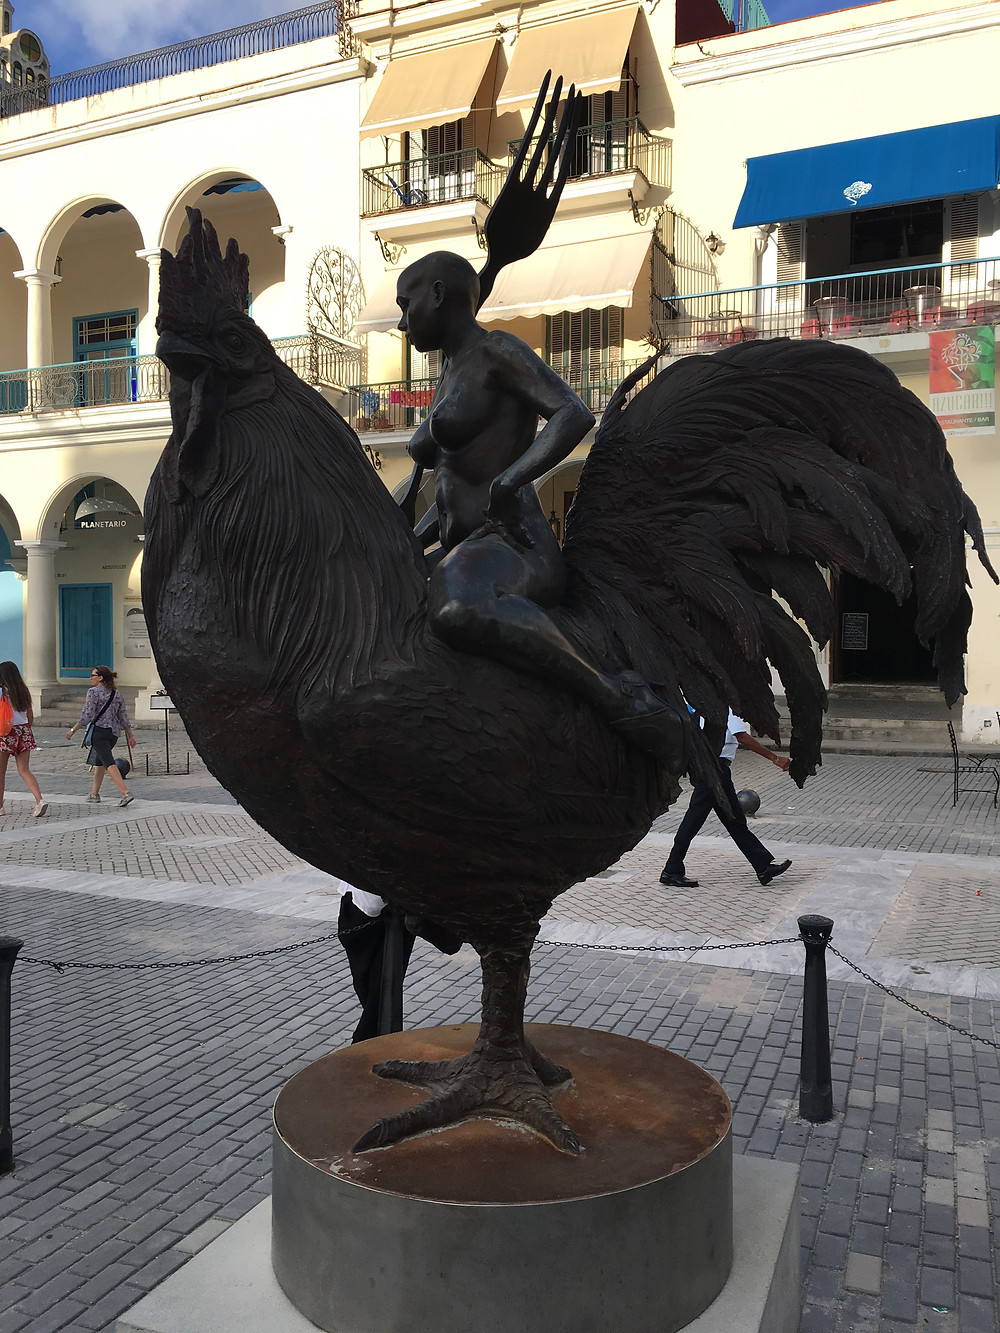 The Lady riding Rooster Statue